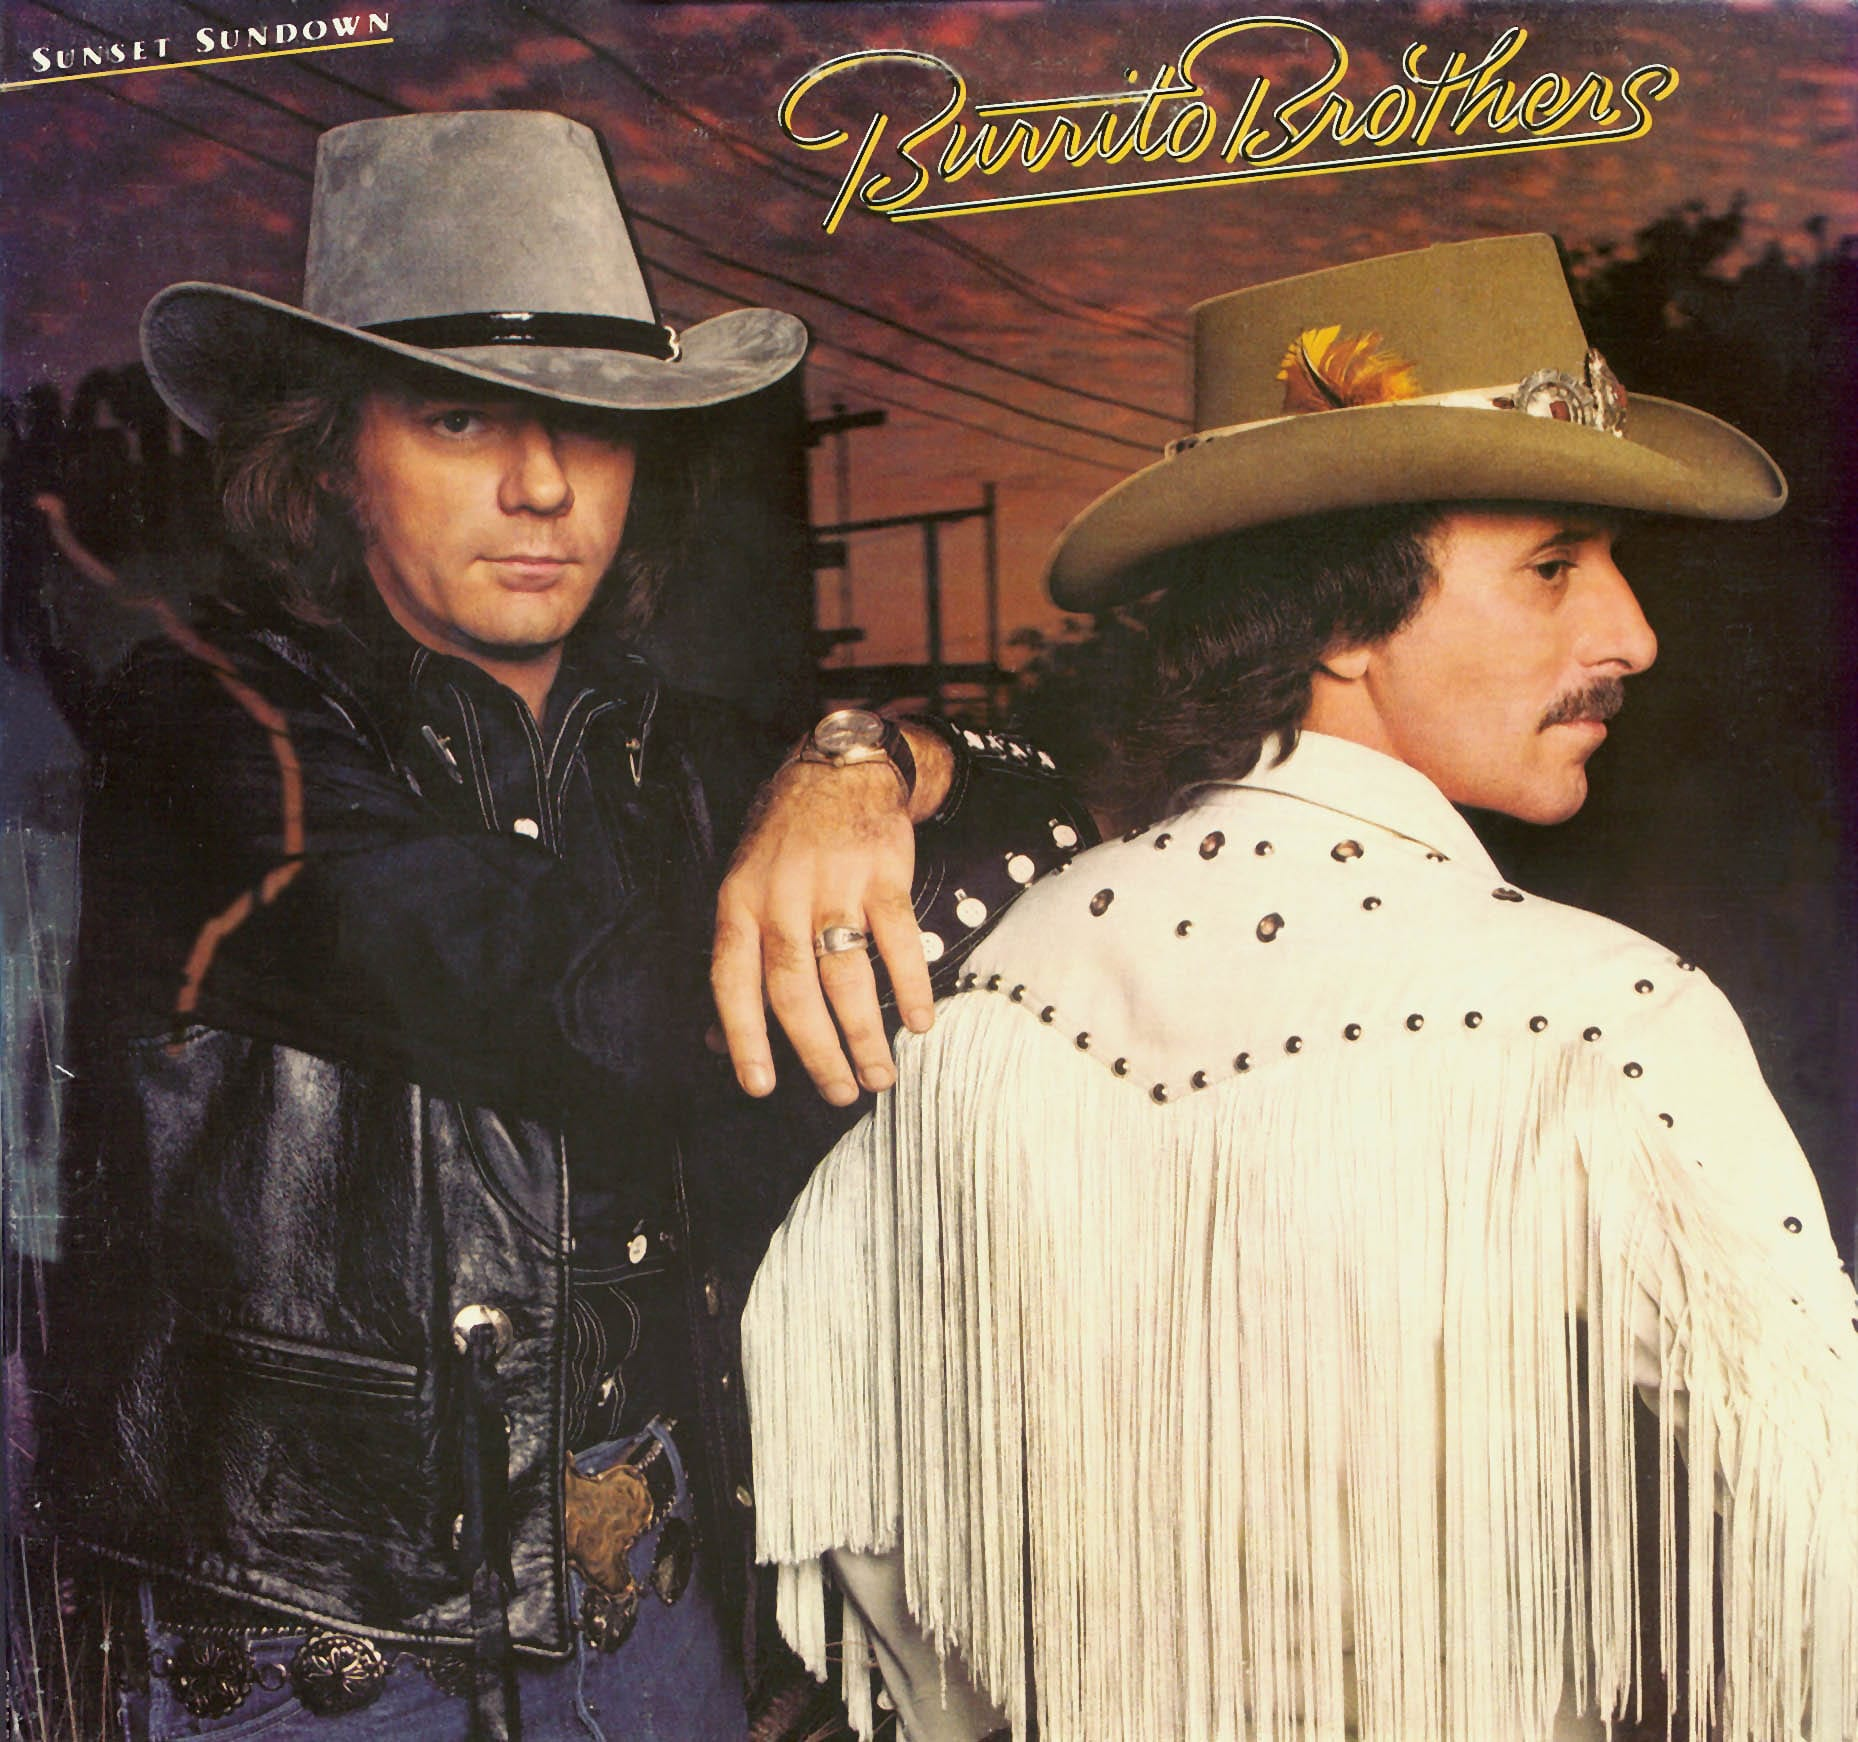 Burrito Brothers - Sunset Sundown (1982) CD 12